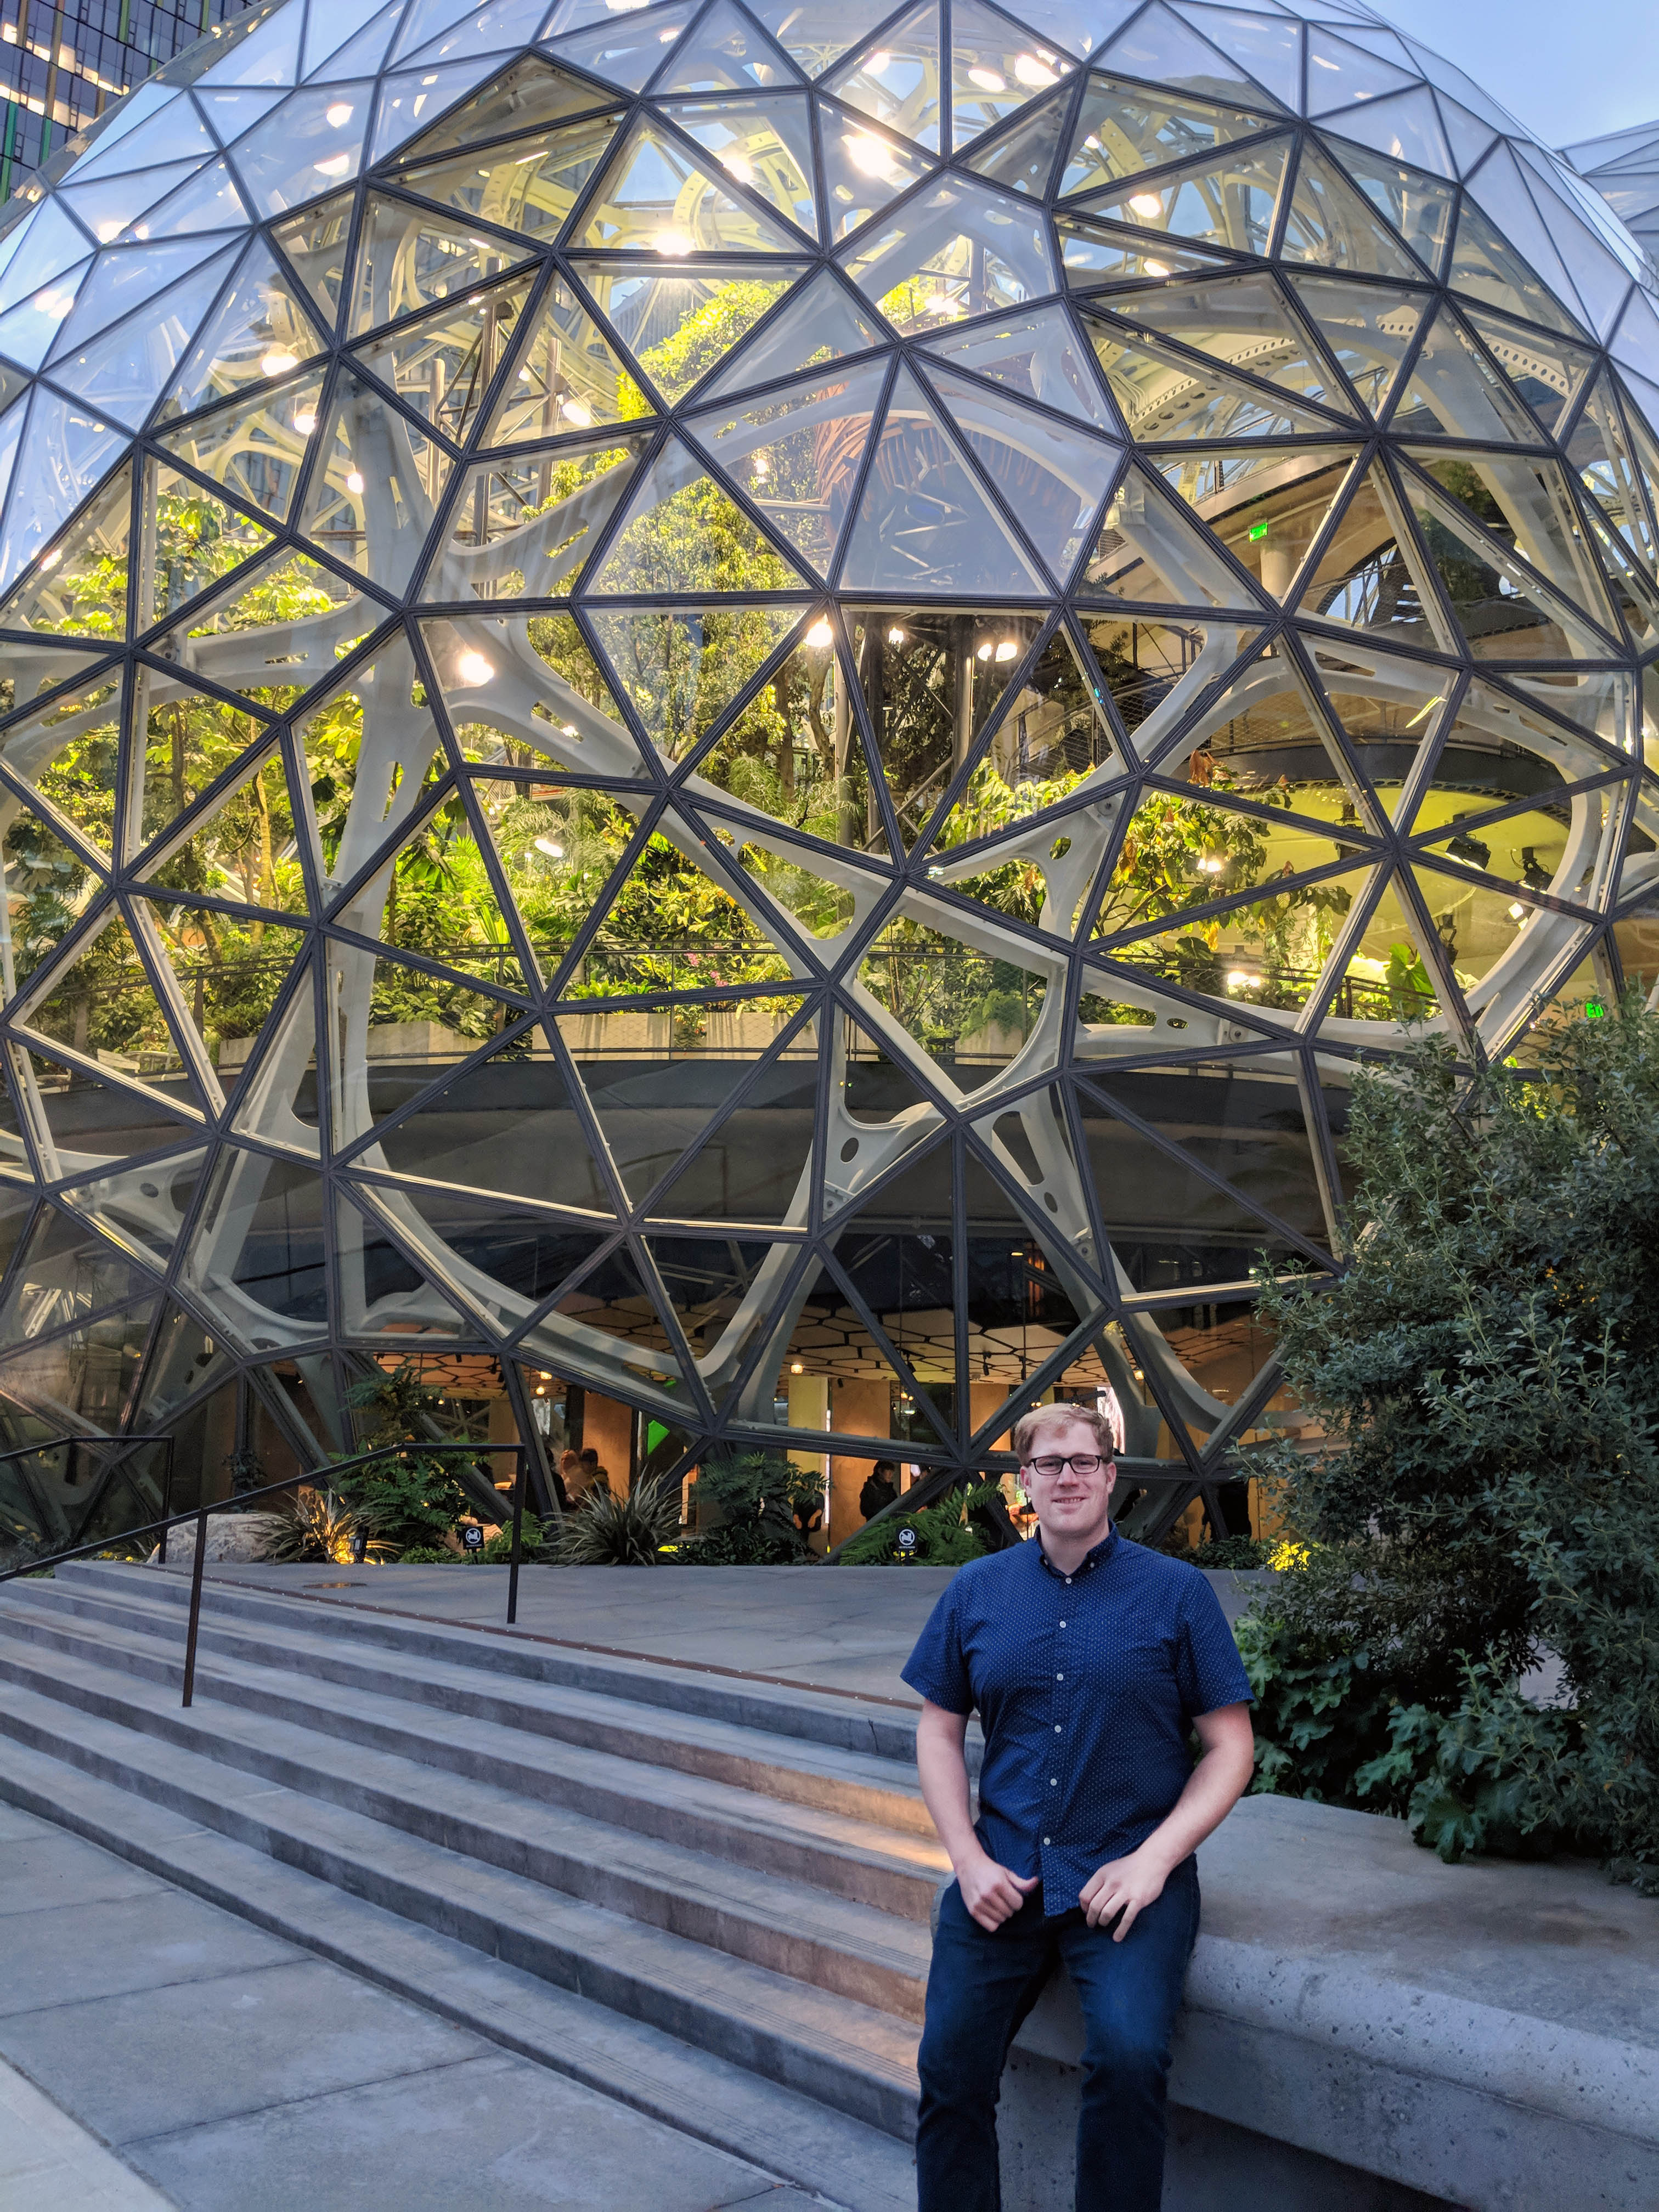 A man sits on steps in front of spherical glass and metals architecture on Amazon's campus